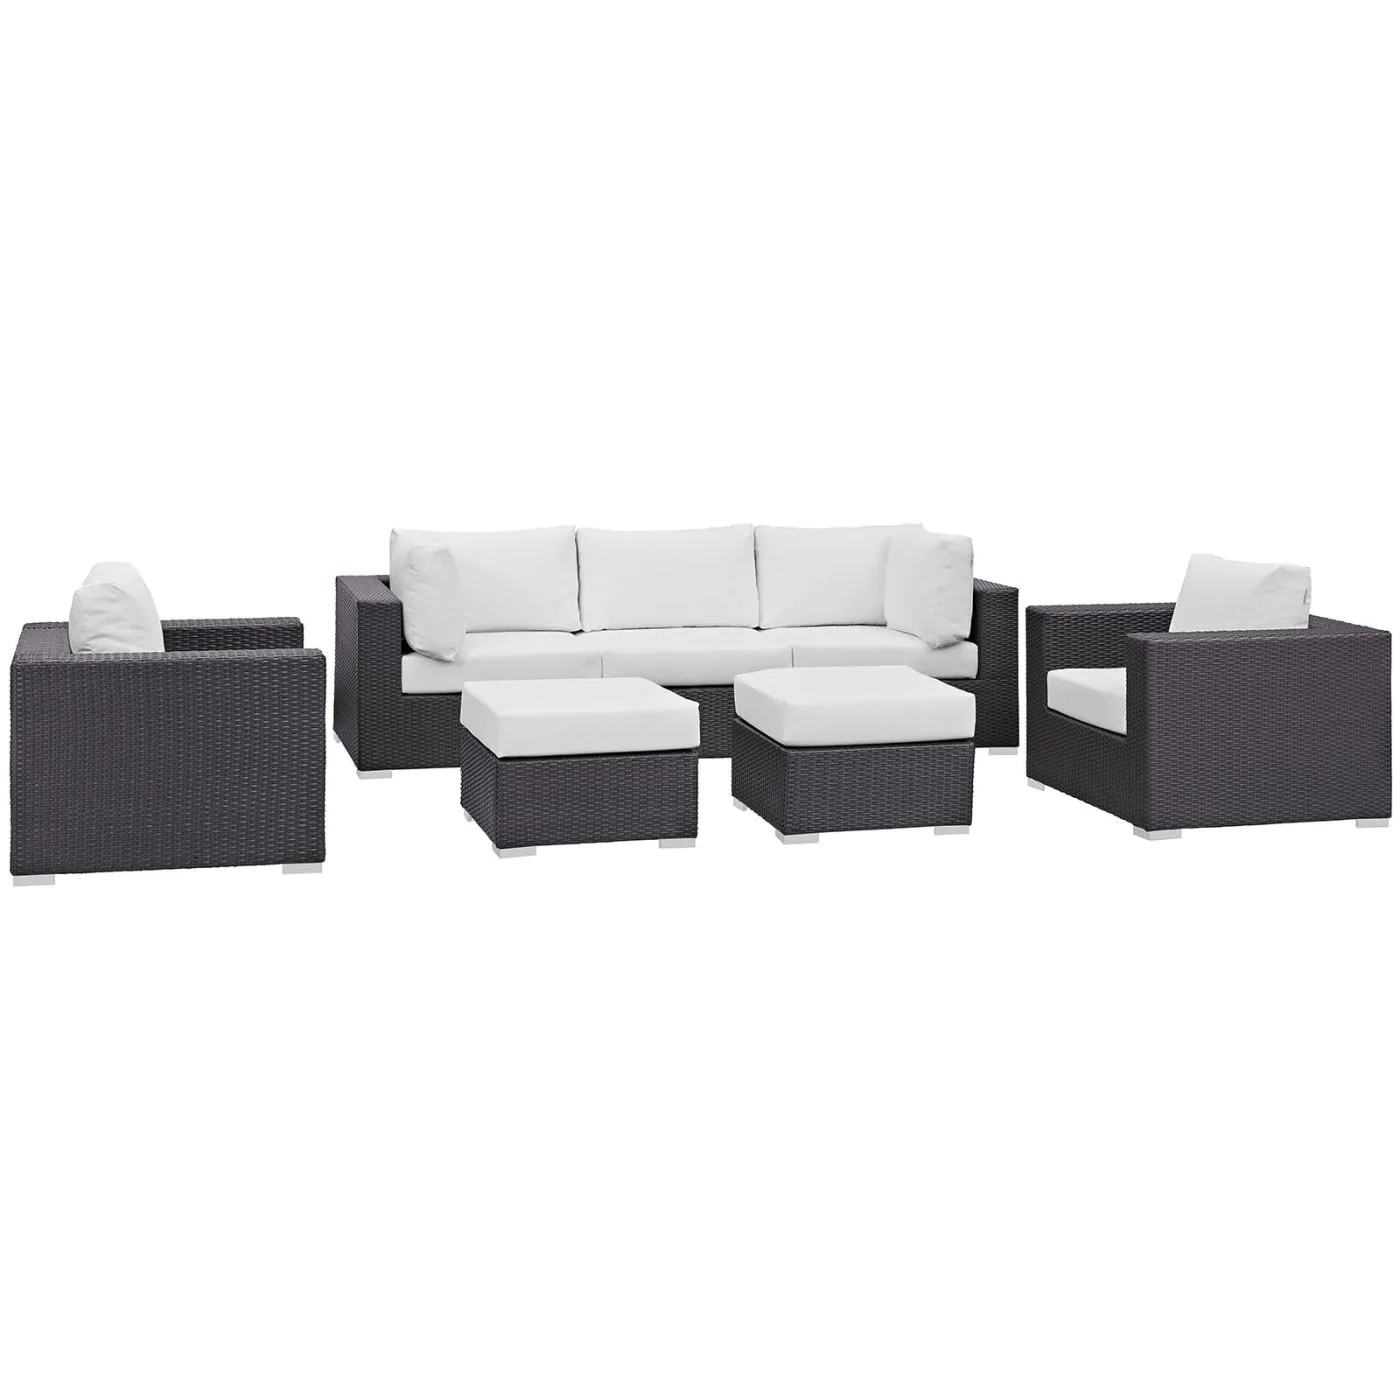 7 Piece Patio Set Modway Outdoor Patio Sets On Sale Eei 2200 Exp Whi Set Convene 7 Piece Rattan Outdoor Patio Sectional Set Only Only 2 342 25 At Contemporary